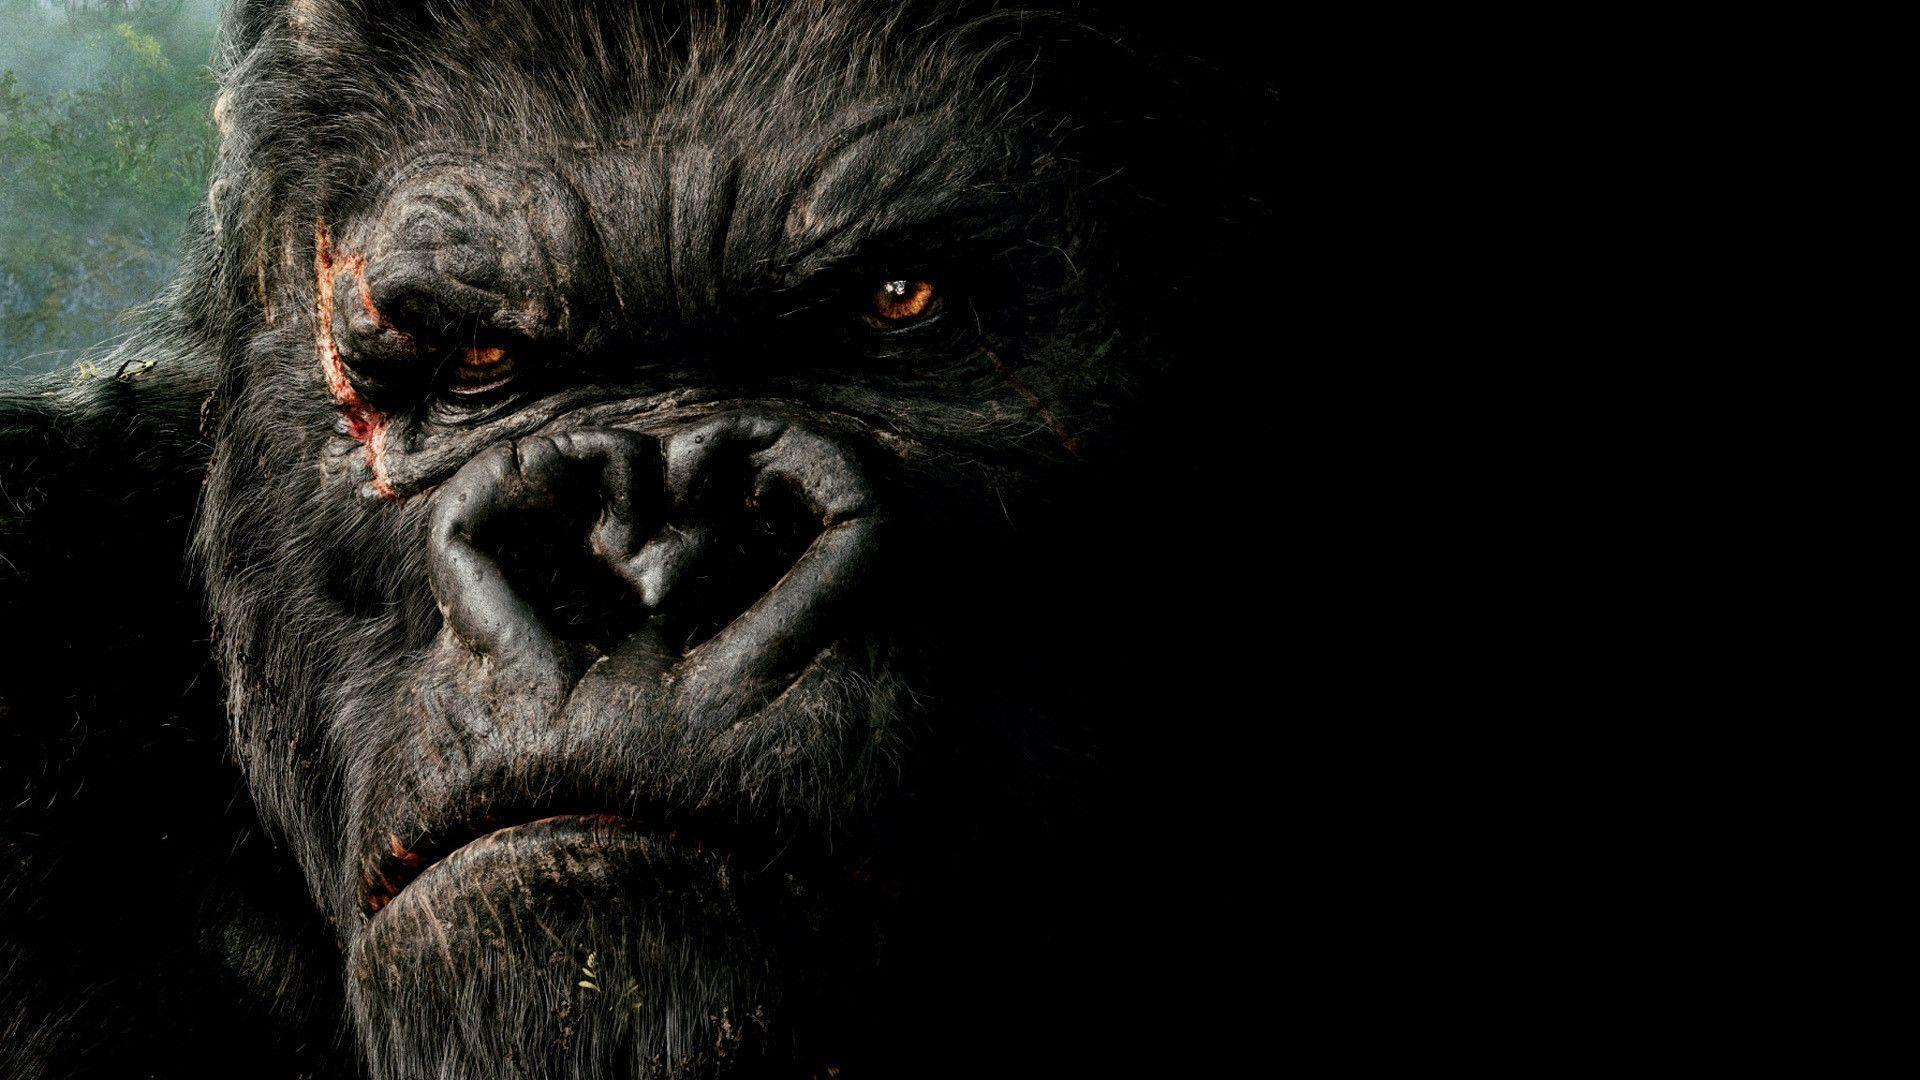 King kong wallpapers wallpaper cave - King kong 2005 hd wallpapers ...